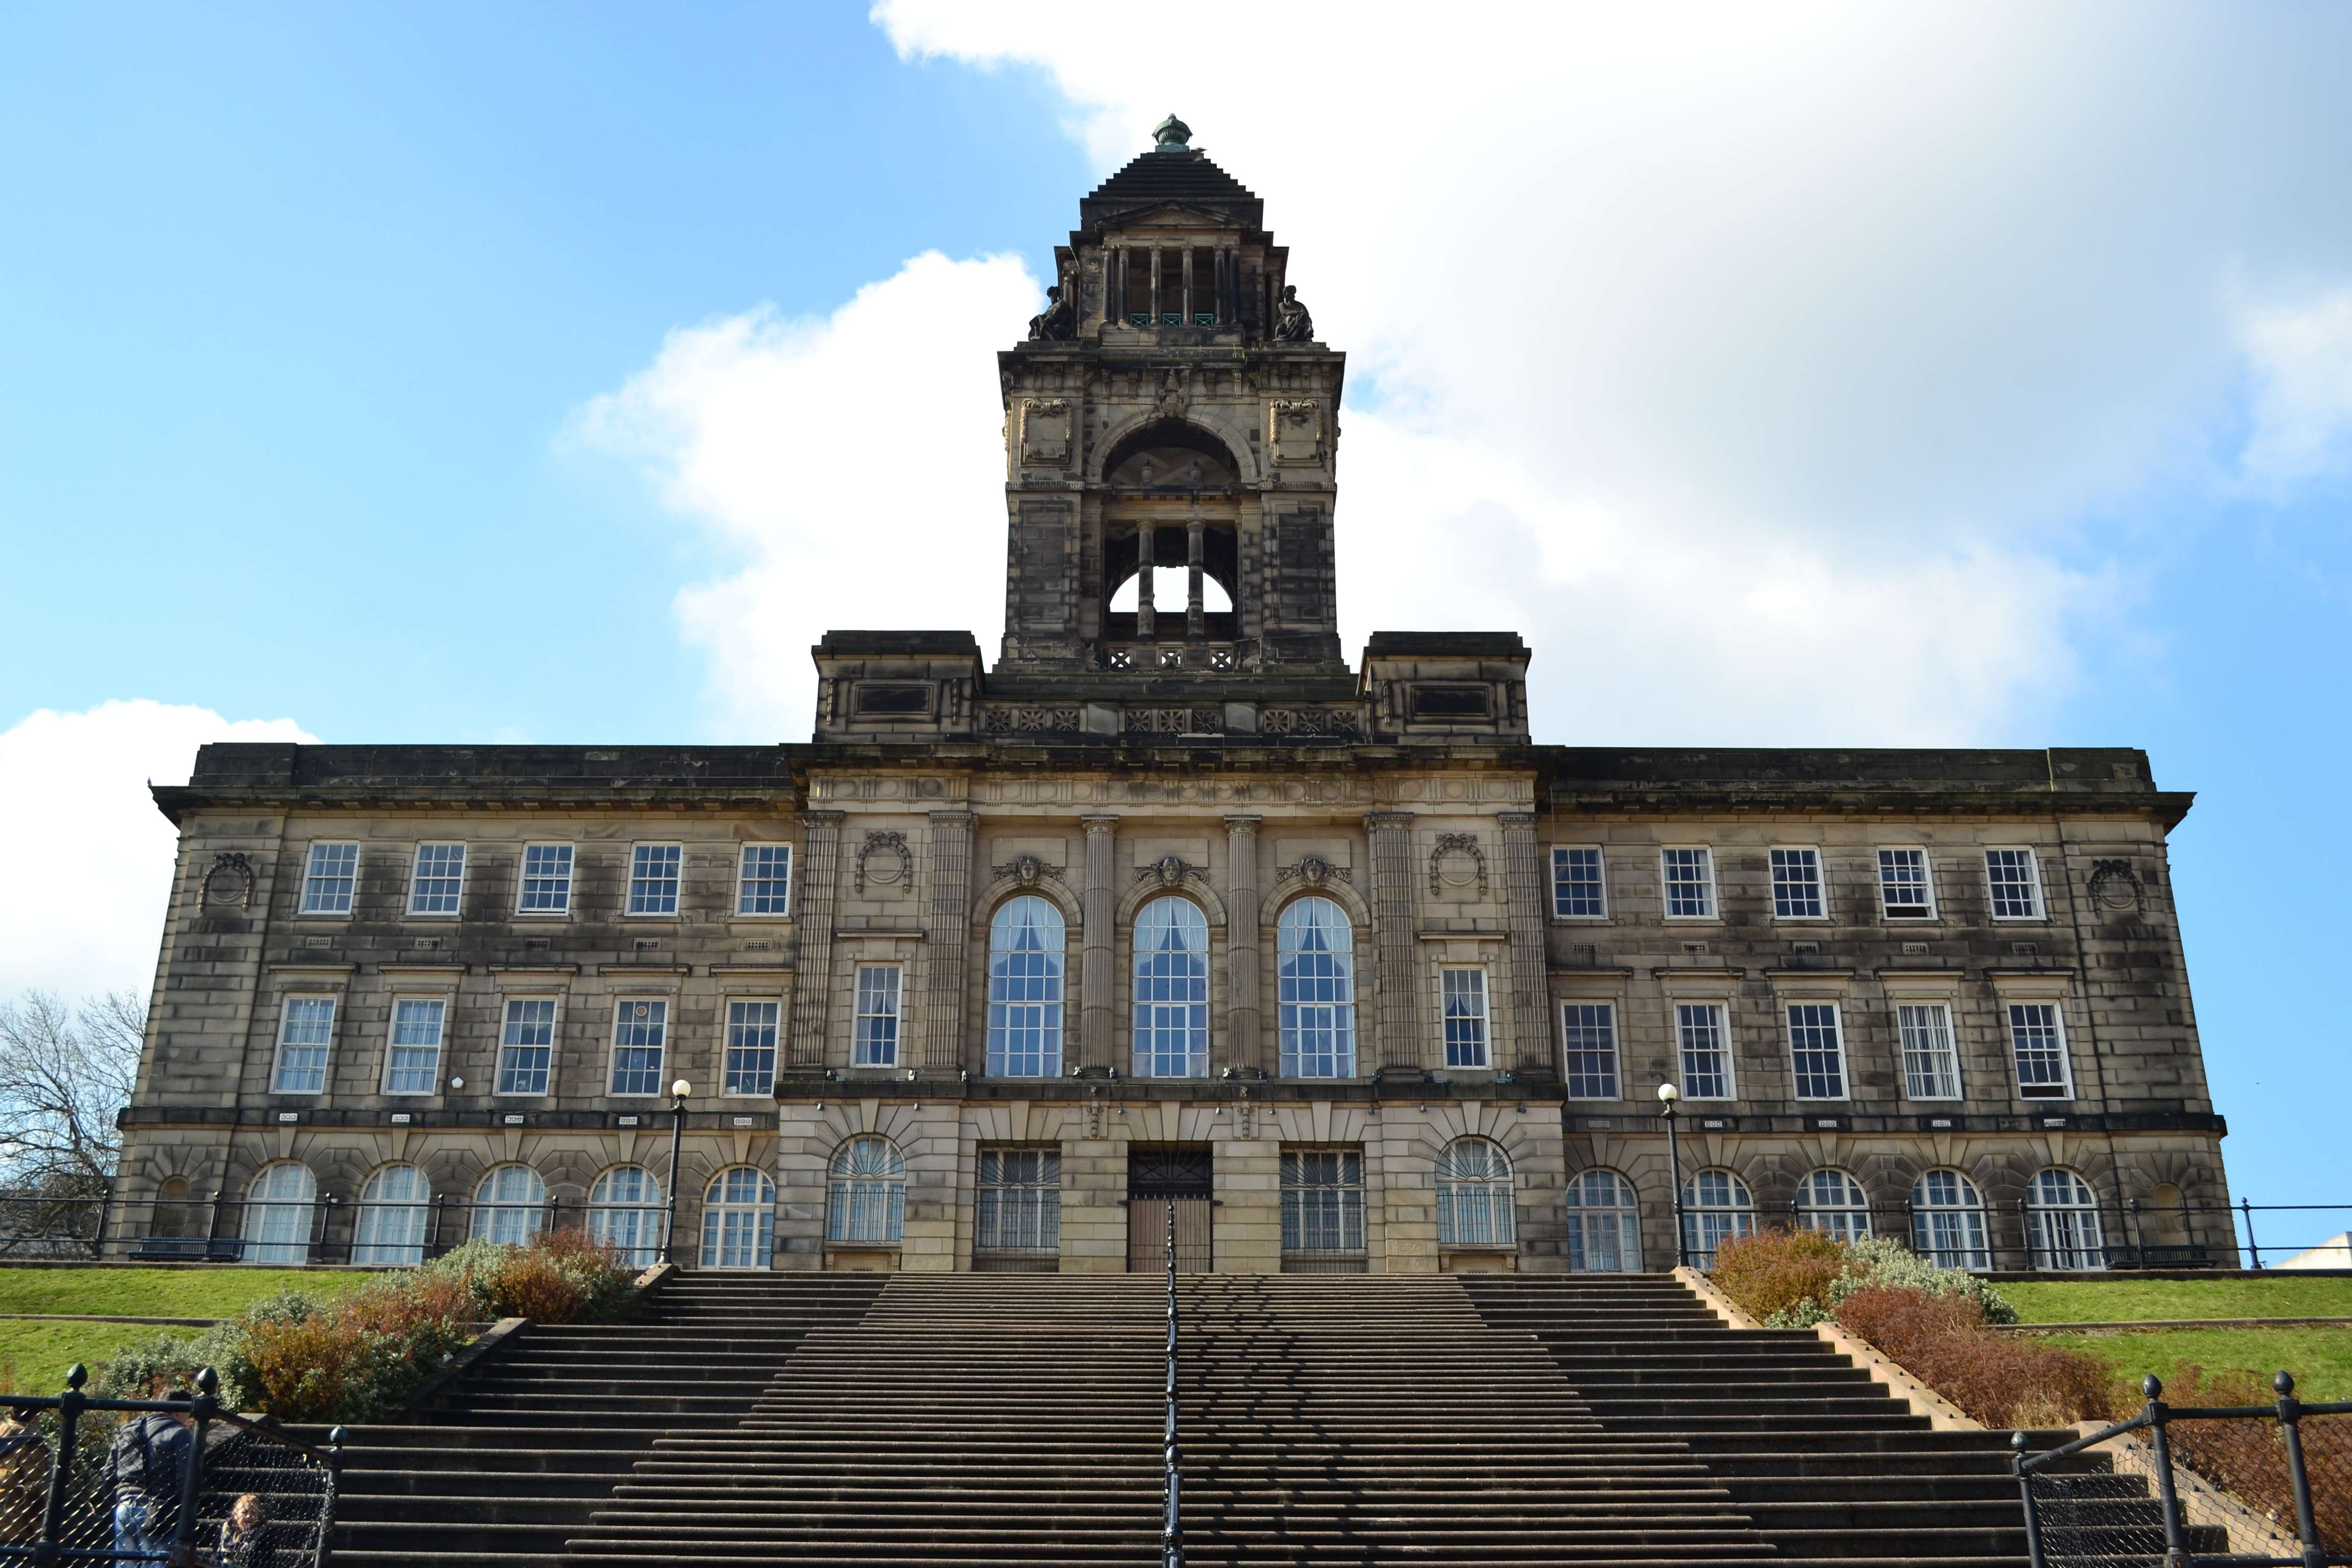 External view of a local authority building, Wallasey Town hall